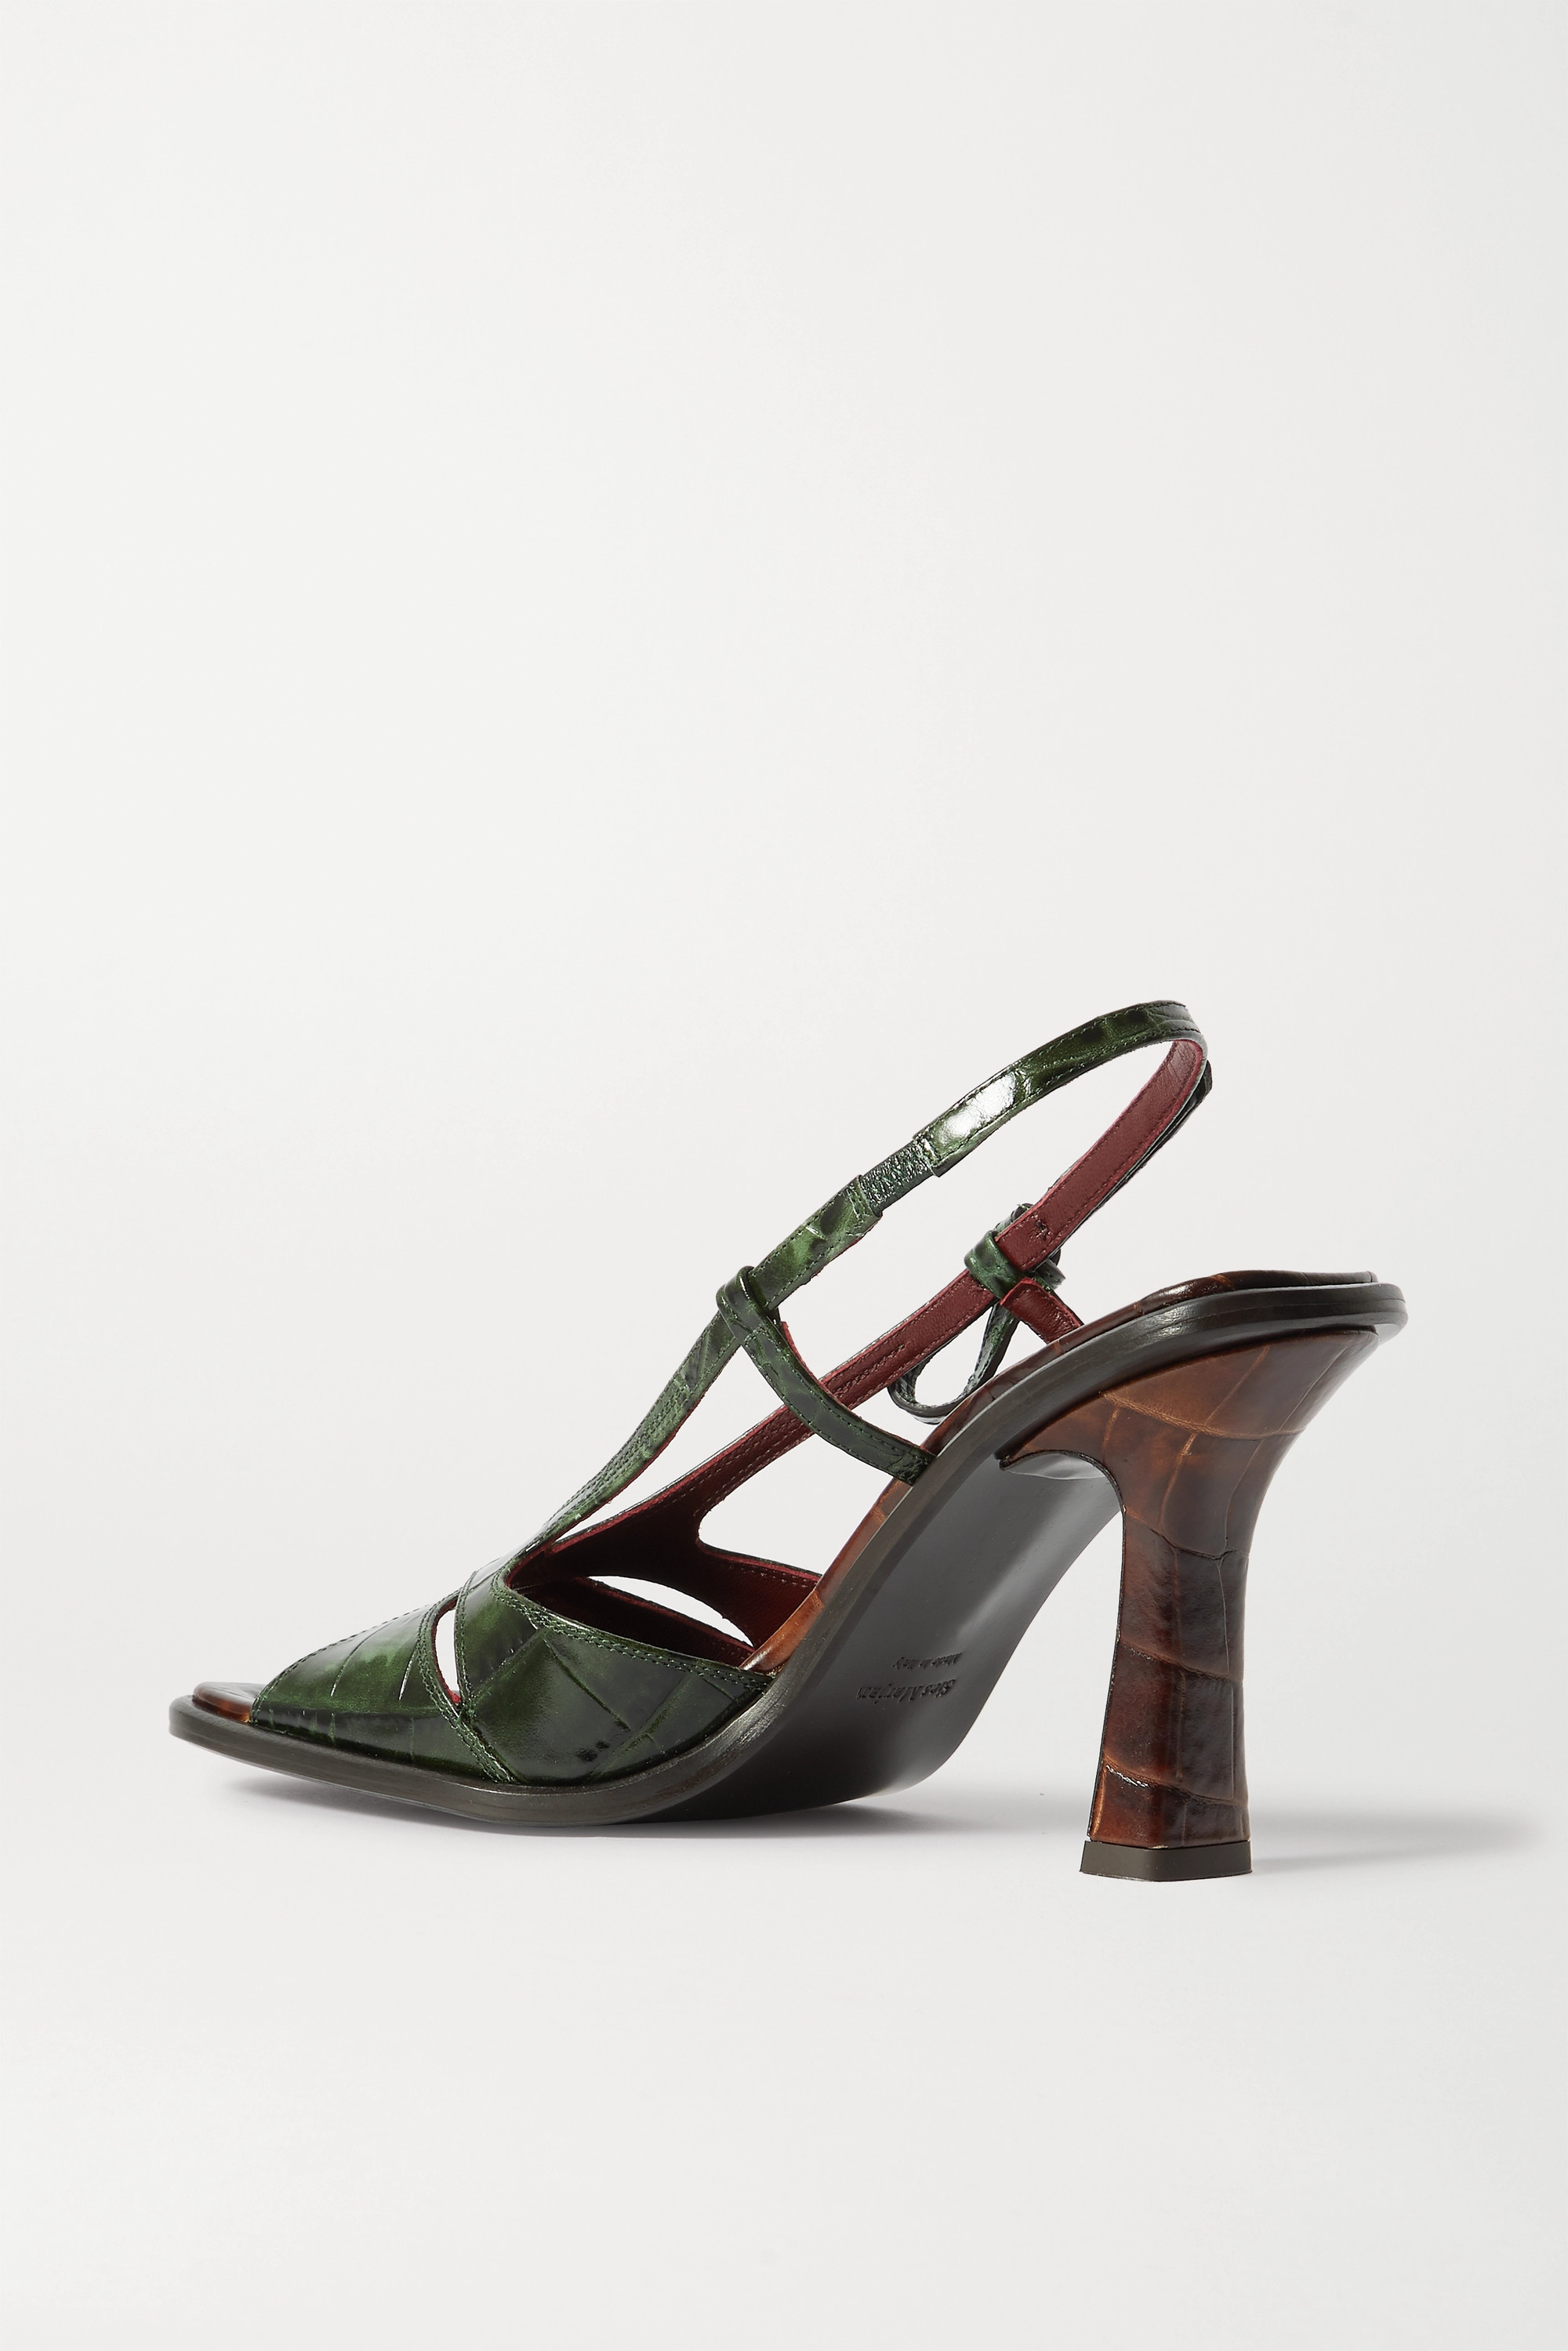 Sies Marjan Diana two-tone croc-effect leather slingback sandals